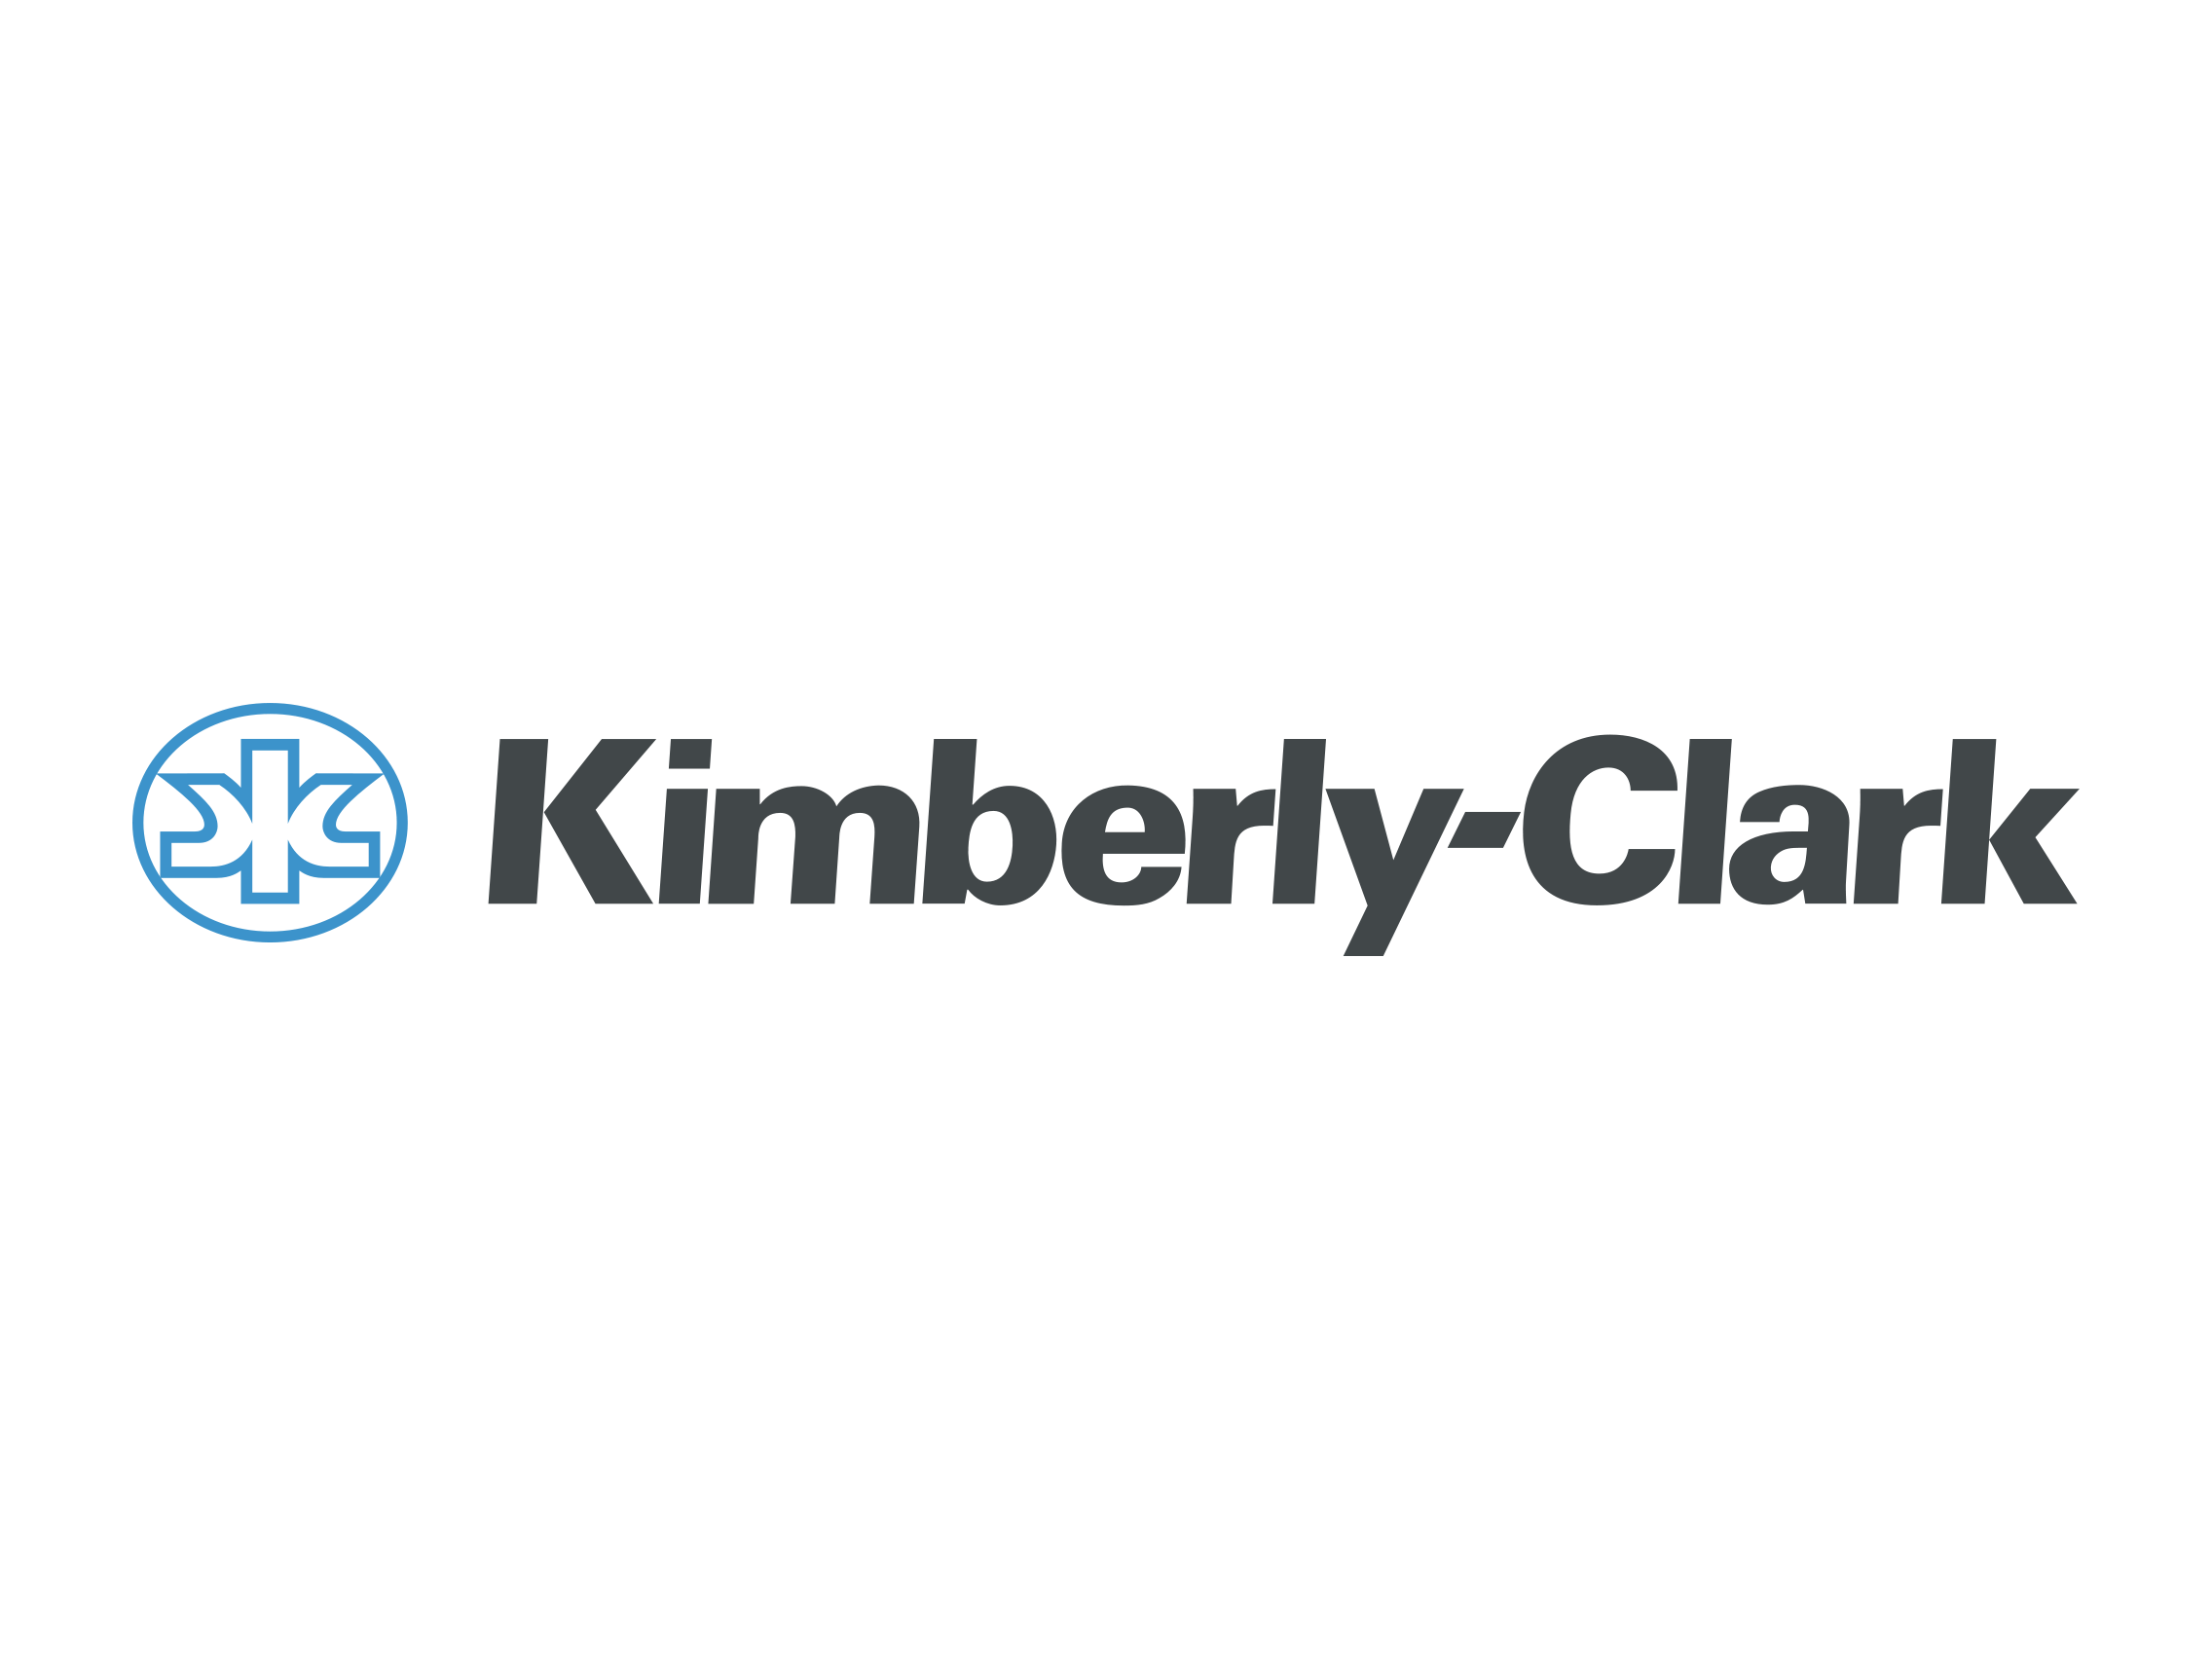 Kimberly Clark Corp (KMB) Receives $132.50 Consensus PT from Brokerages